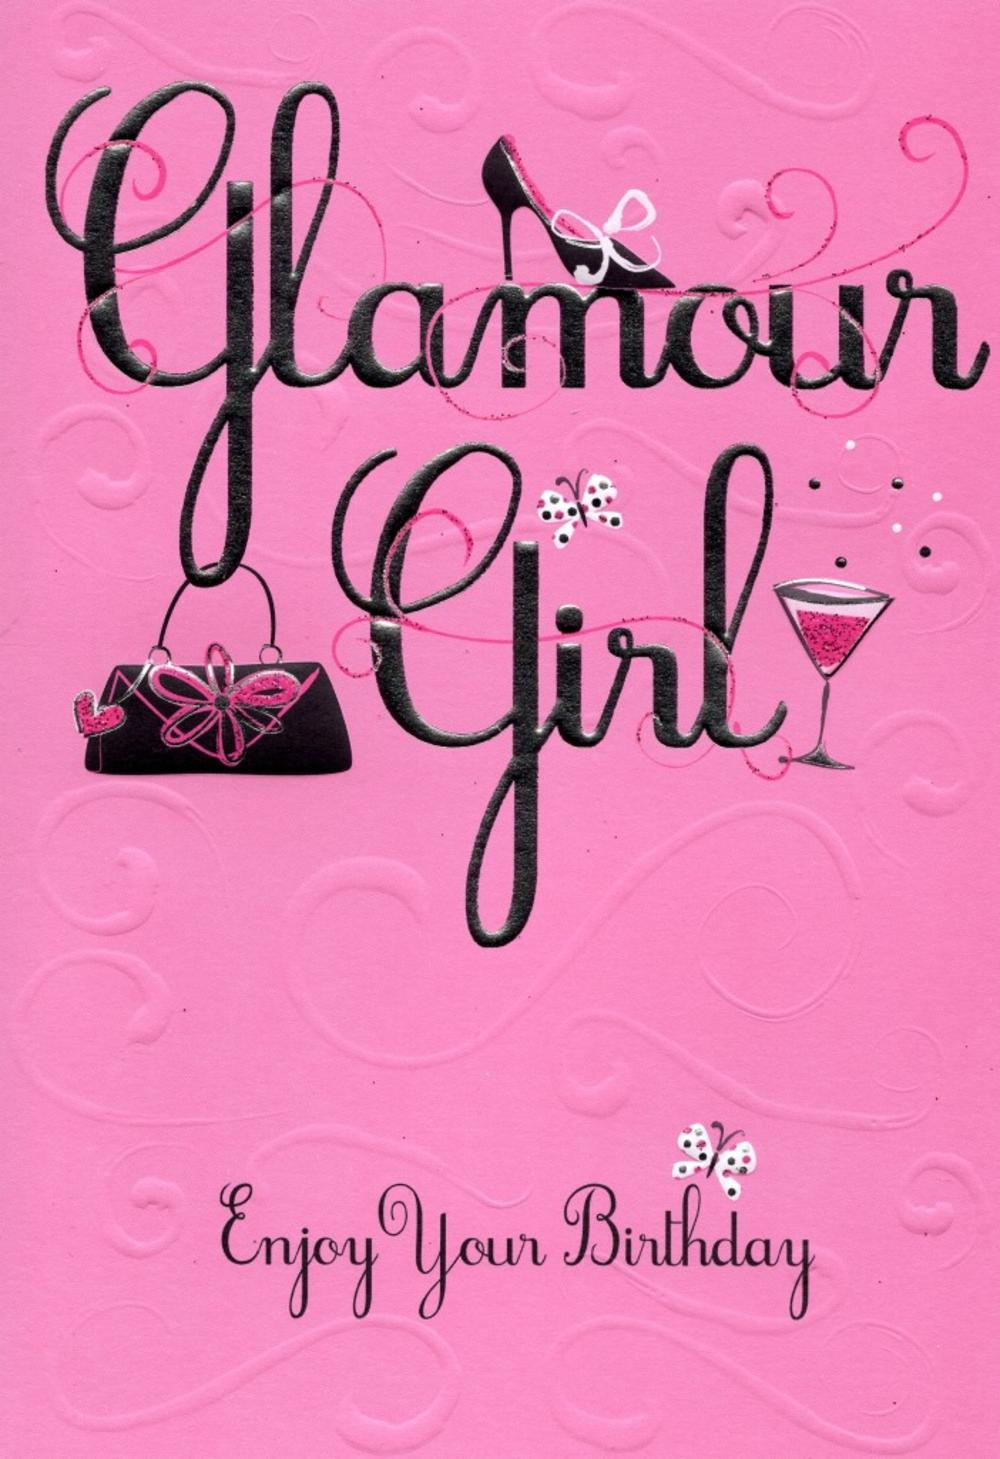 Glamour girl enjoy your birthday greeting card cards love kates glamour girl enjoy your birthday greeting card bookmarktalkfo Image collections